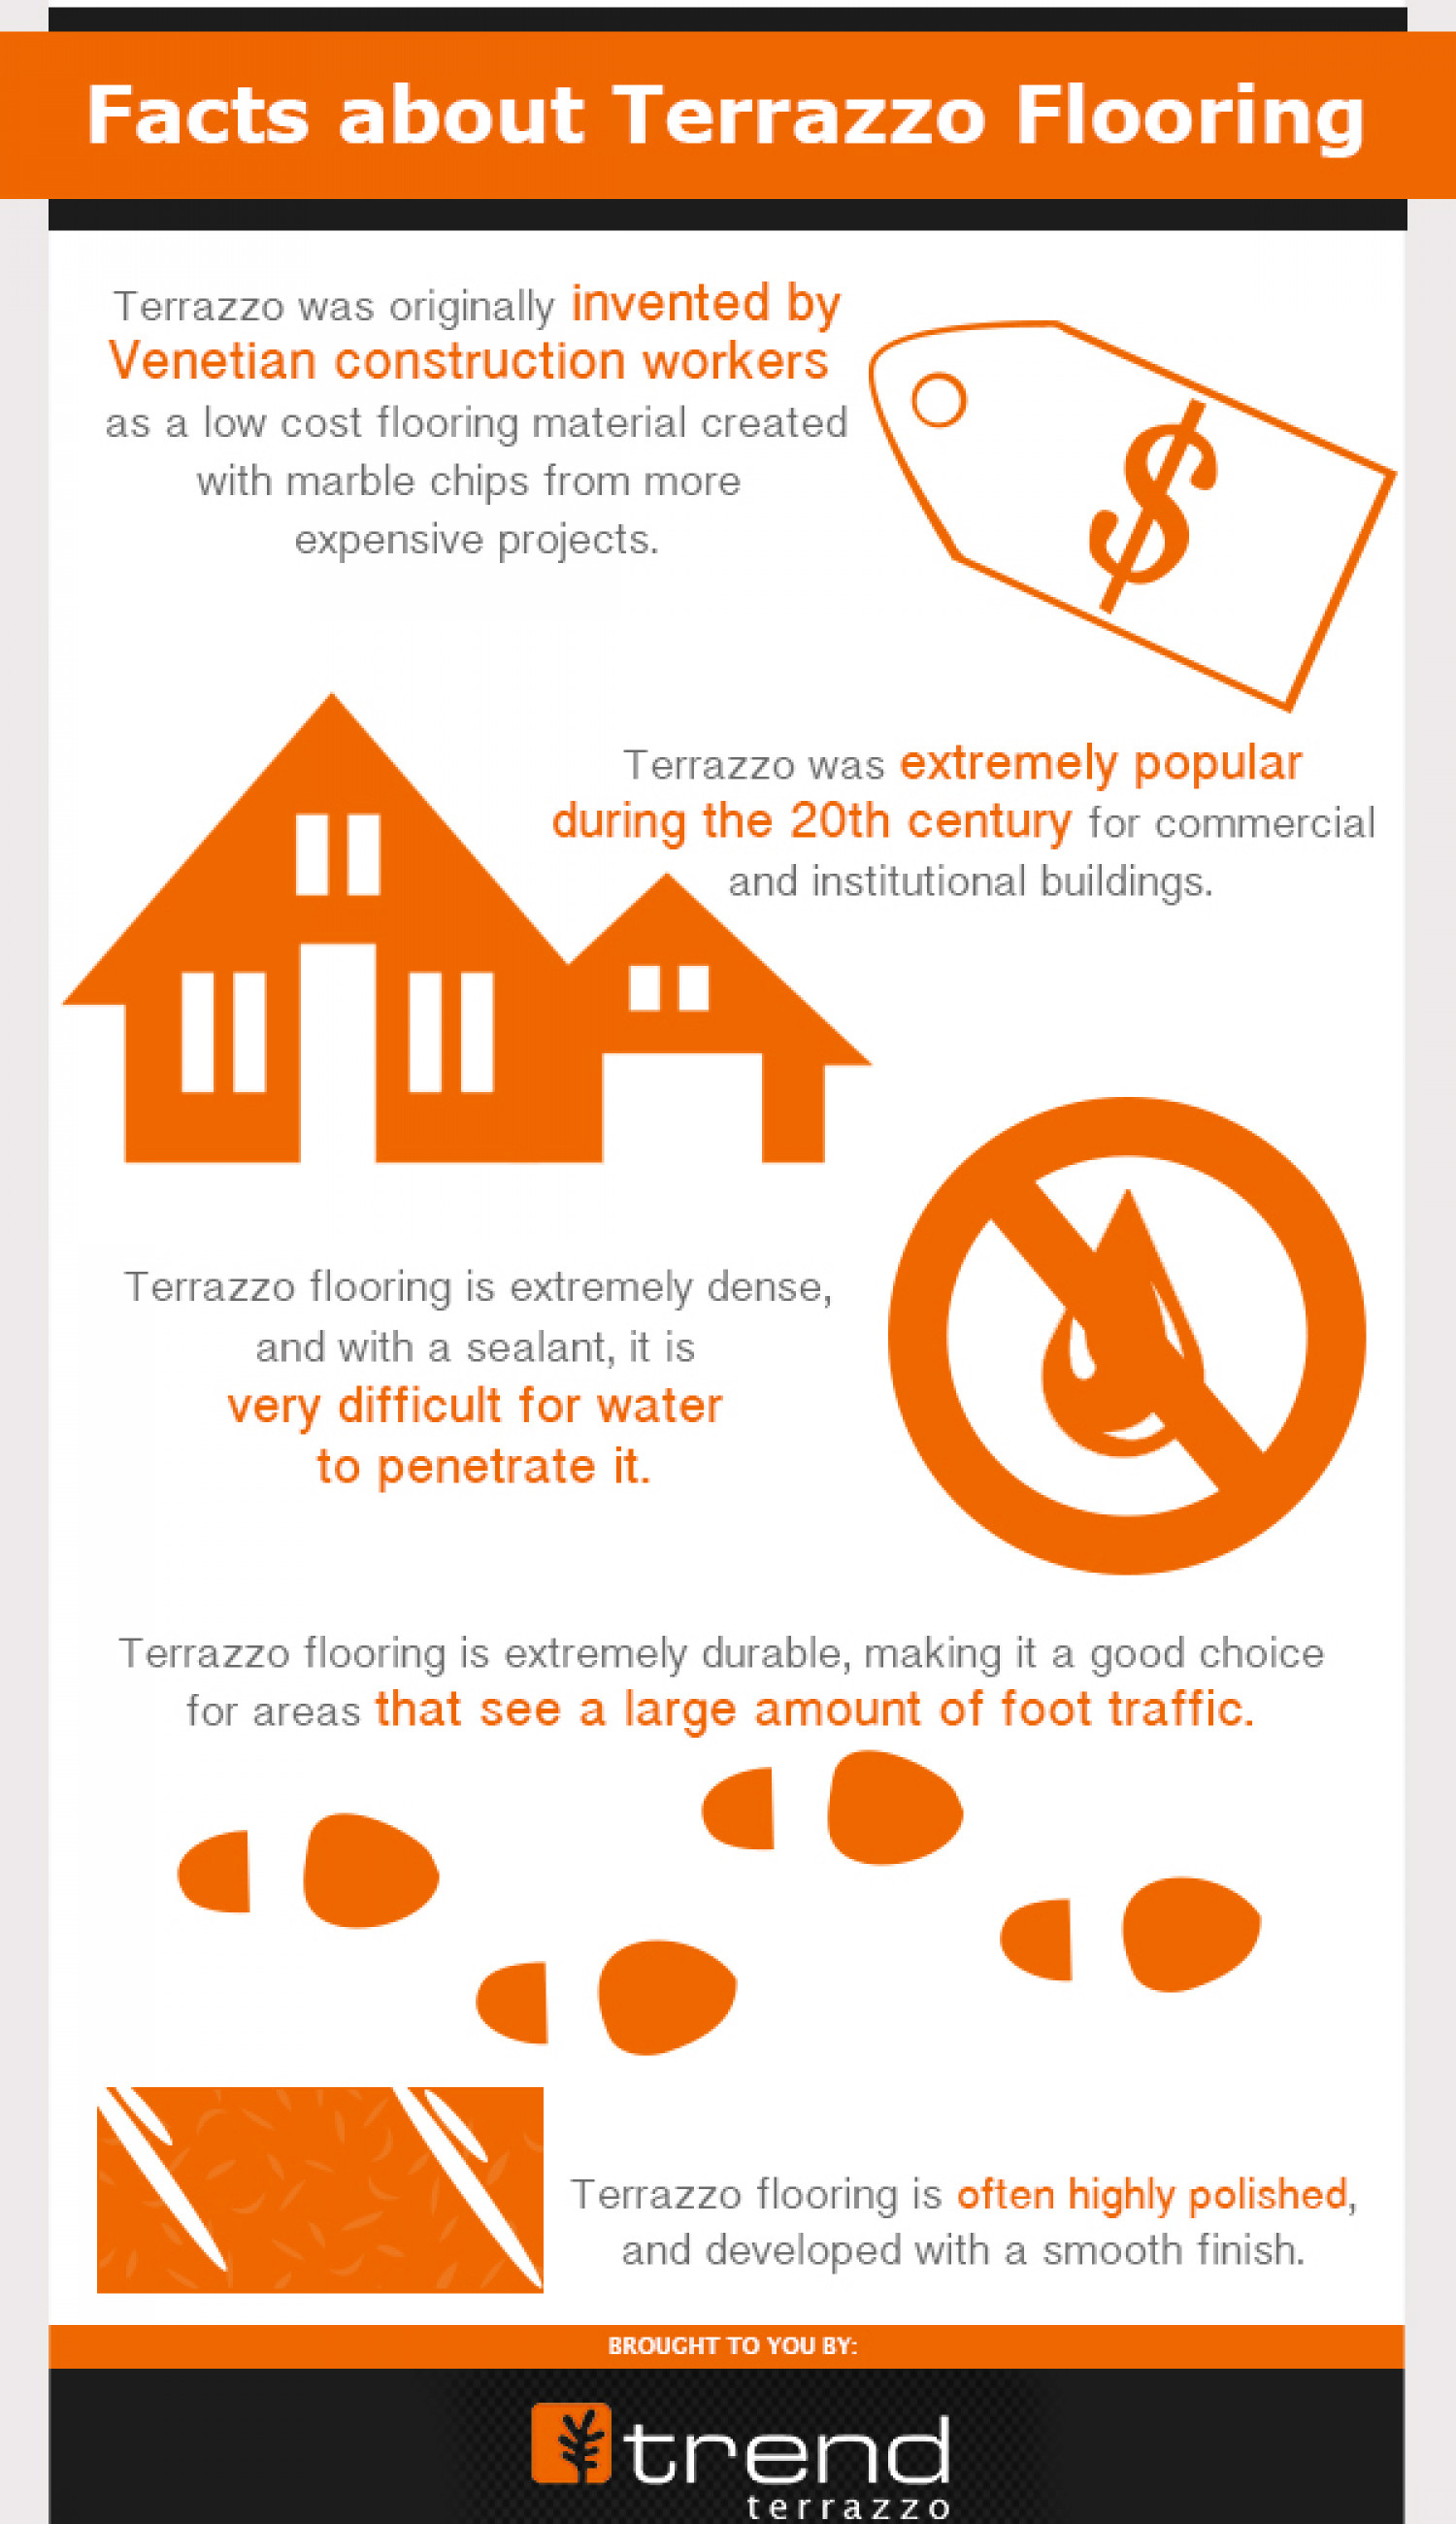 Facts About Terrazzo Flooring Infographic